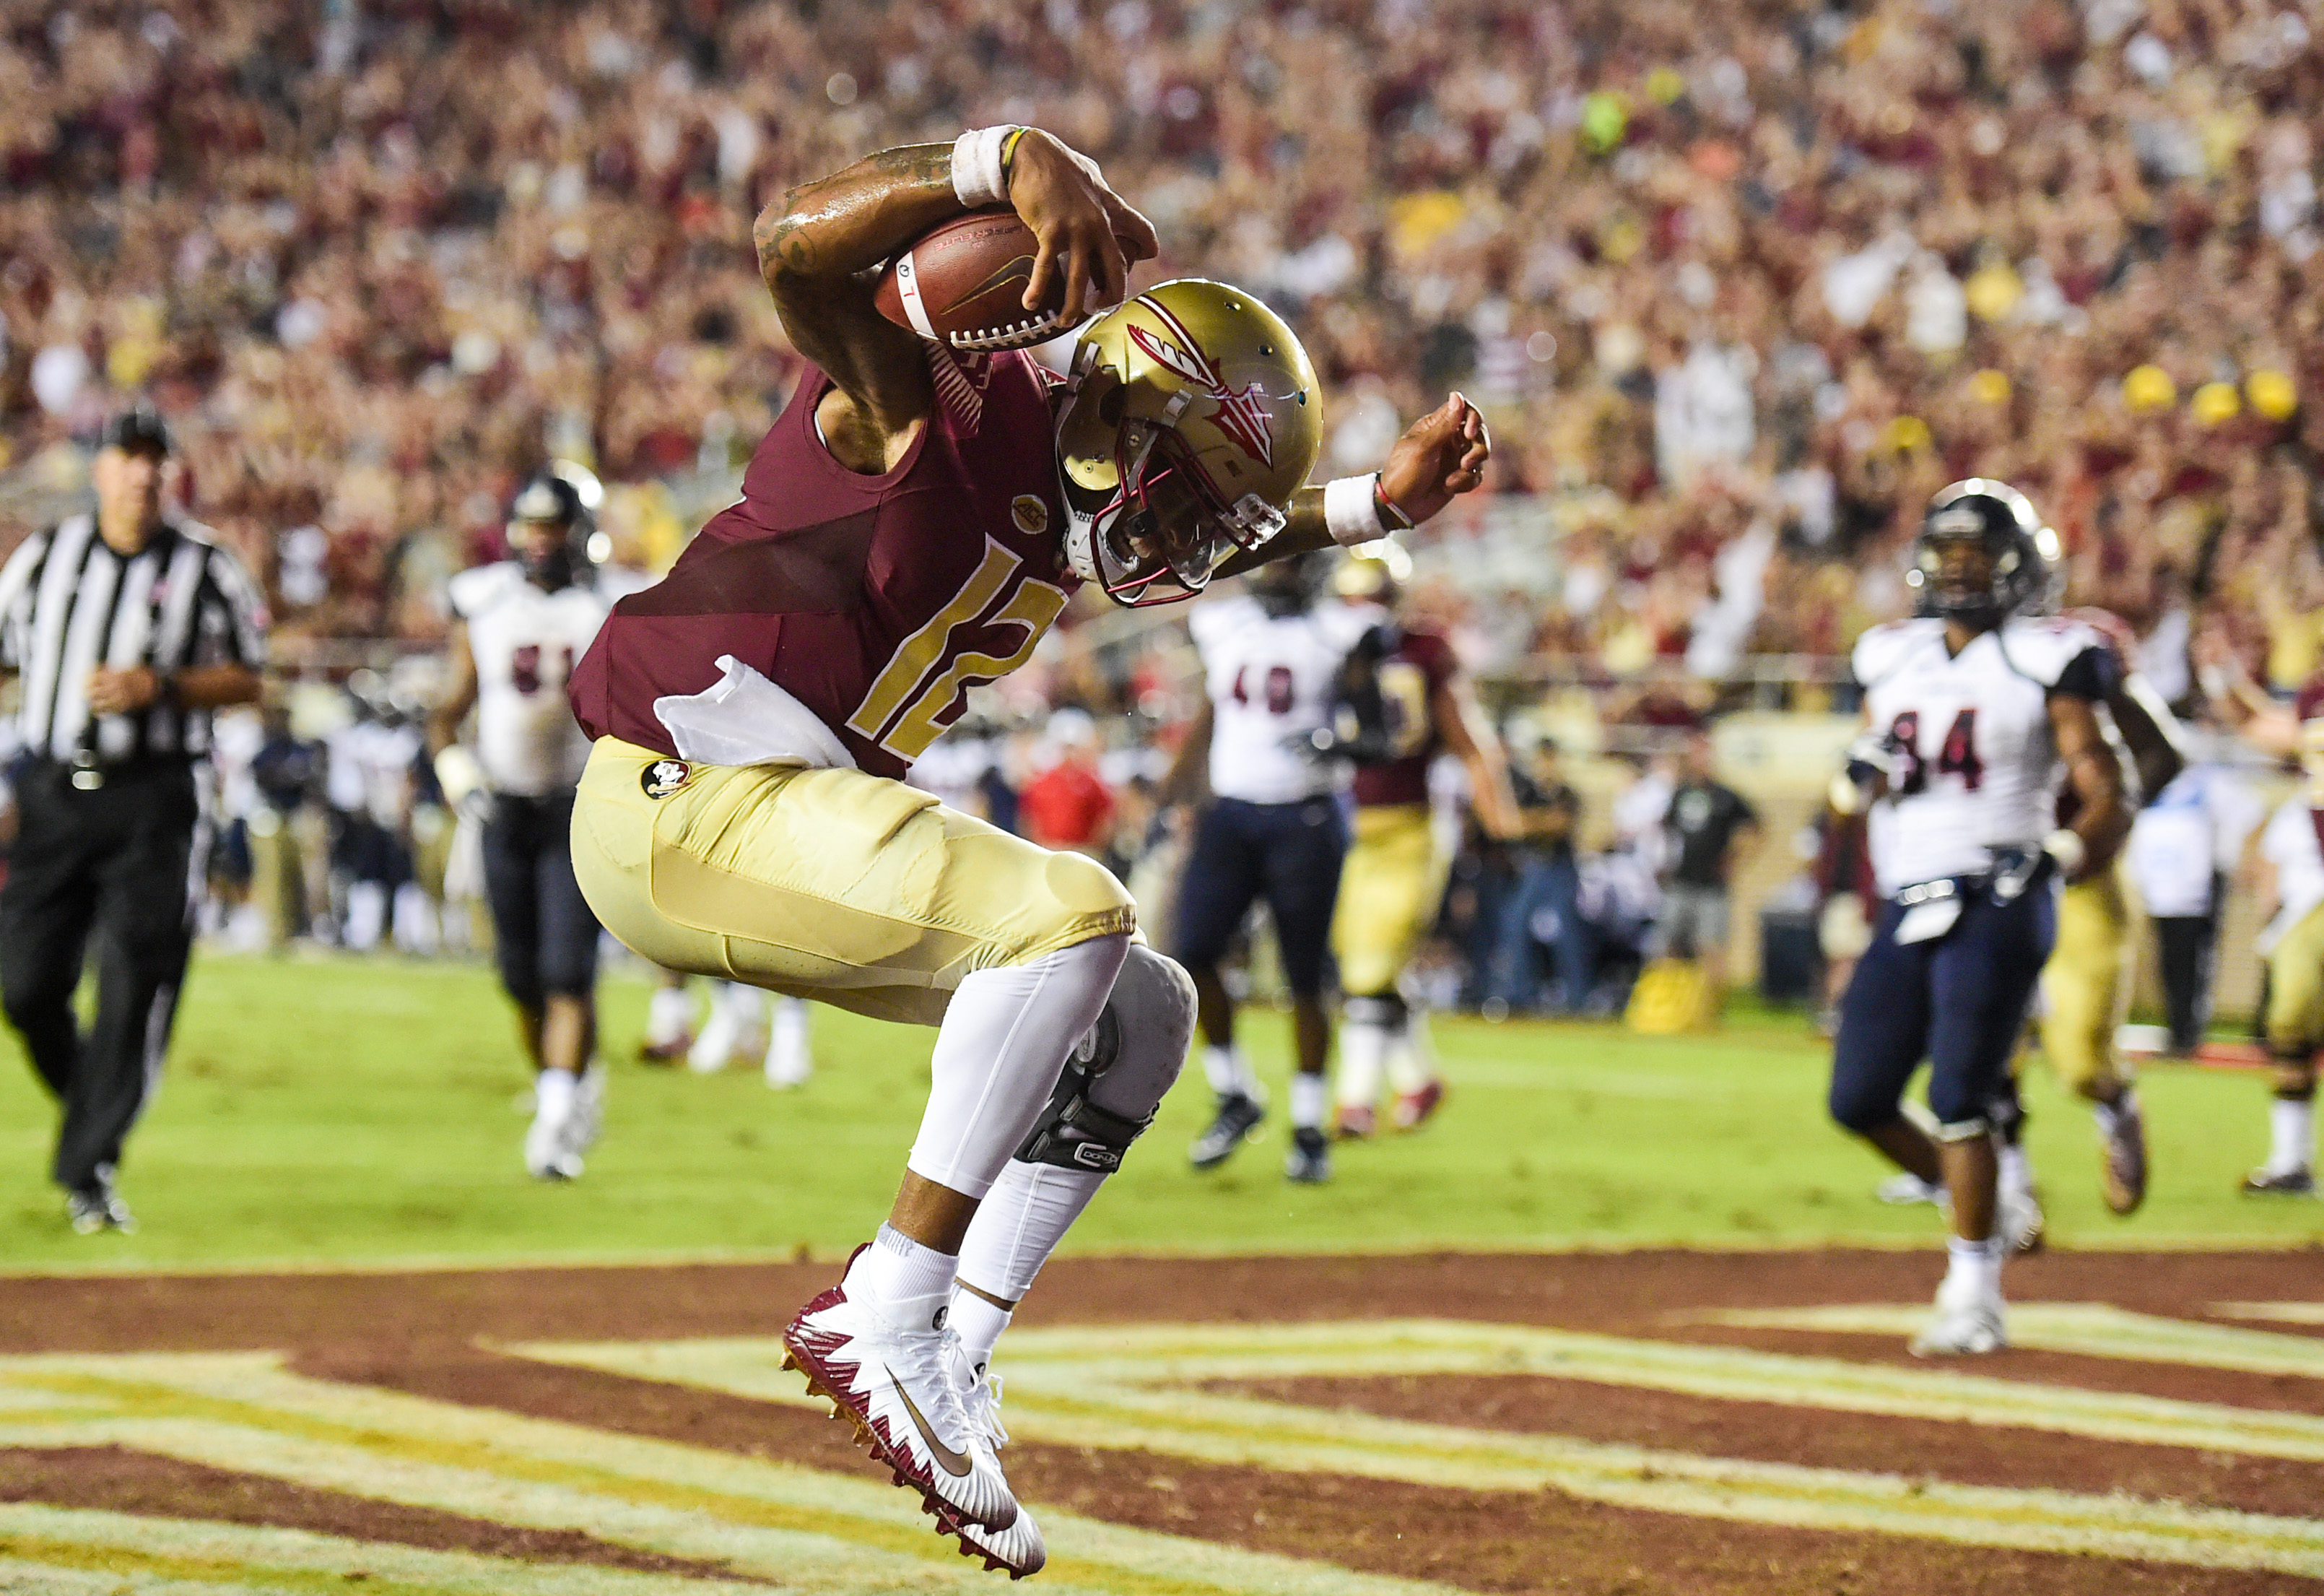 Photos: FSU vs. Samford